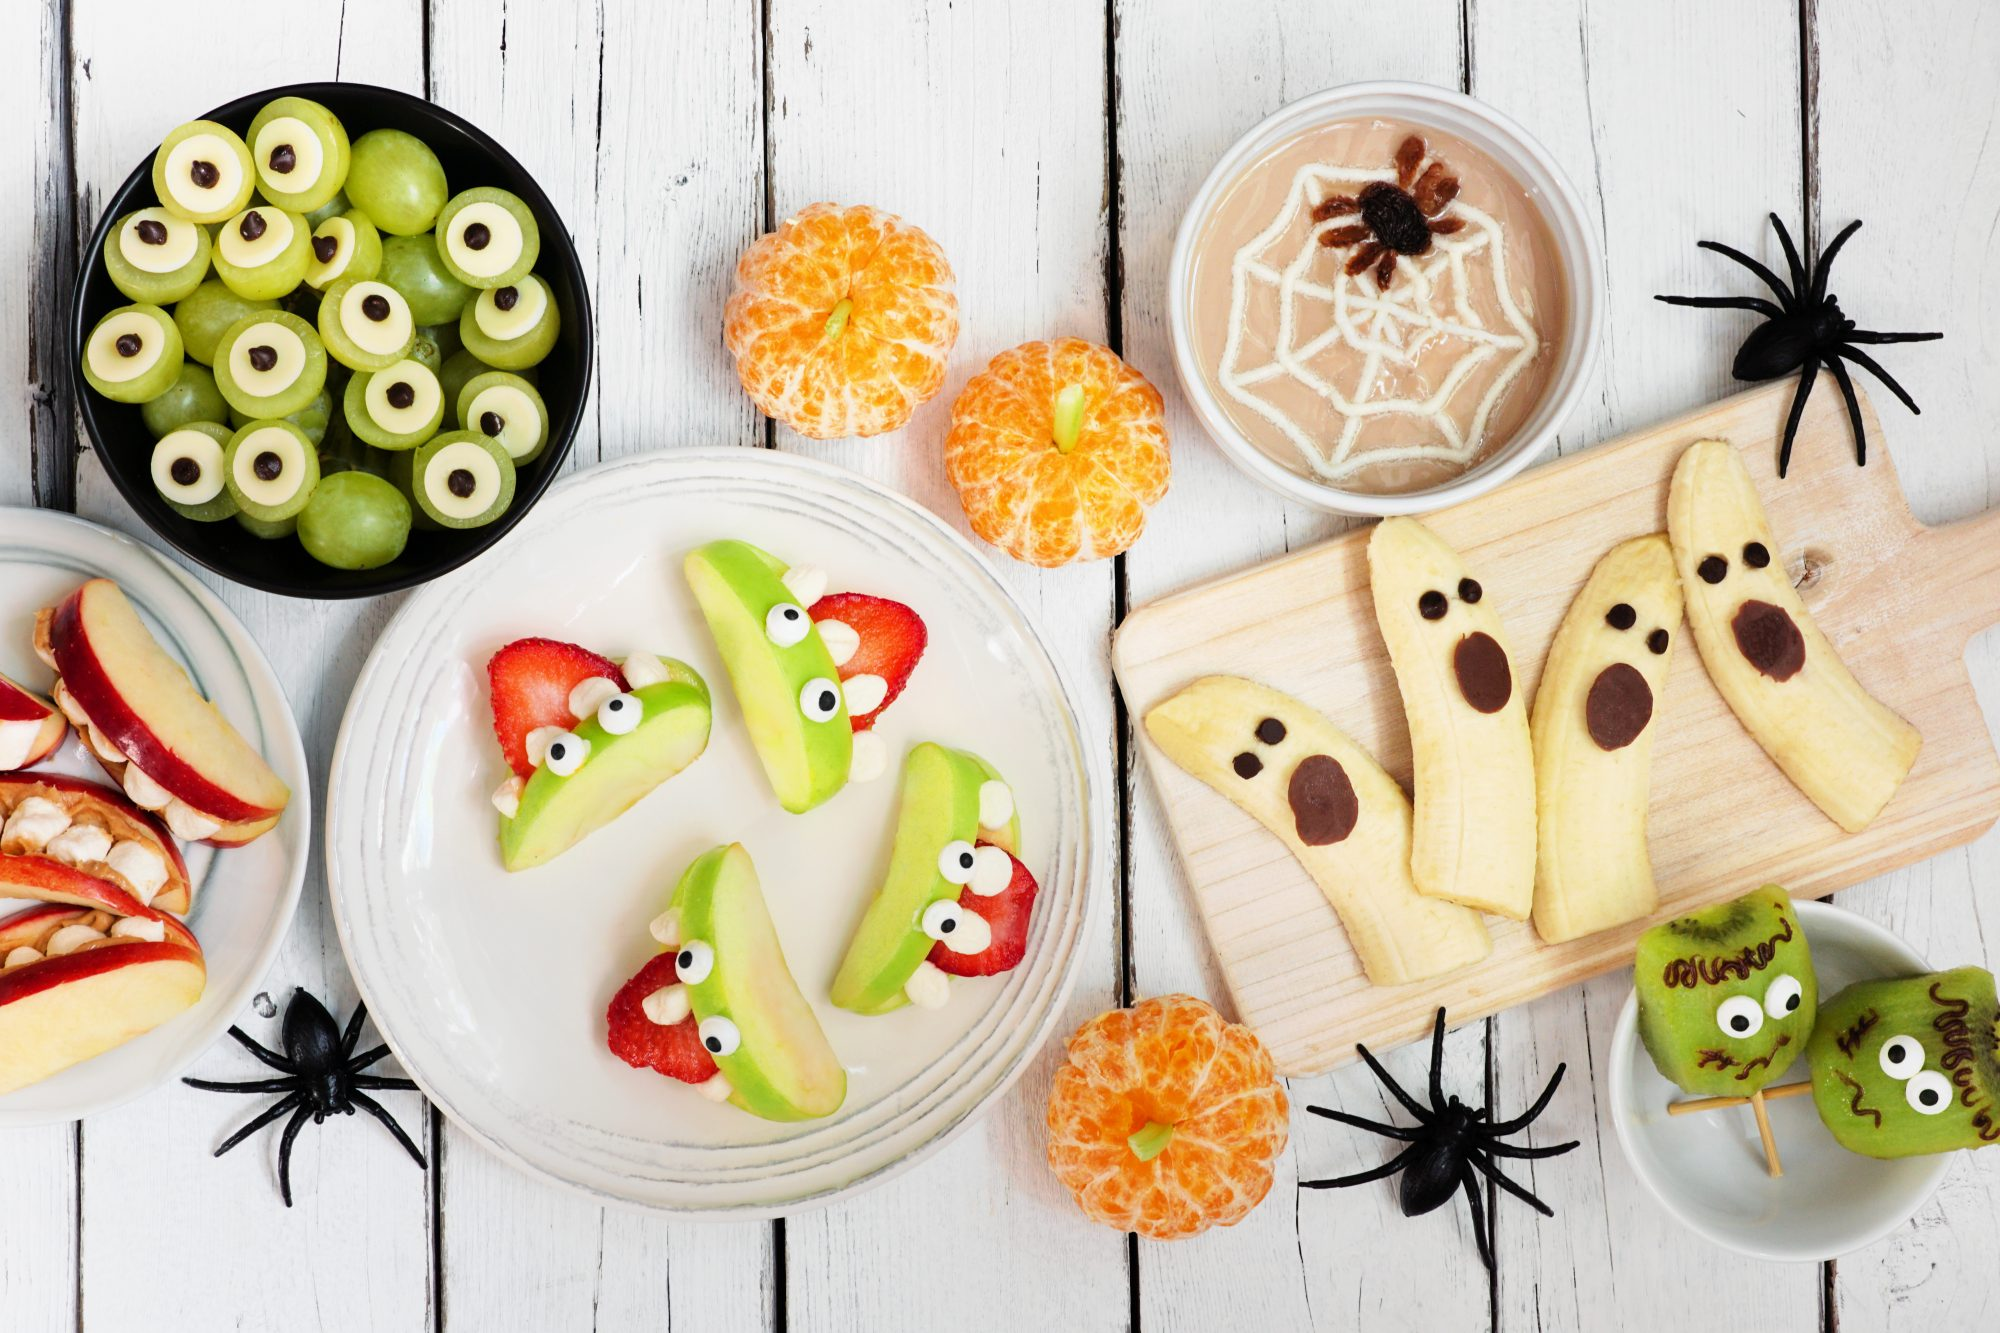 Easy Halloween Snacks.21 Halloween Food Ideas And Party Foods Perfect For Any October Gathering Real Simple